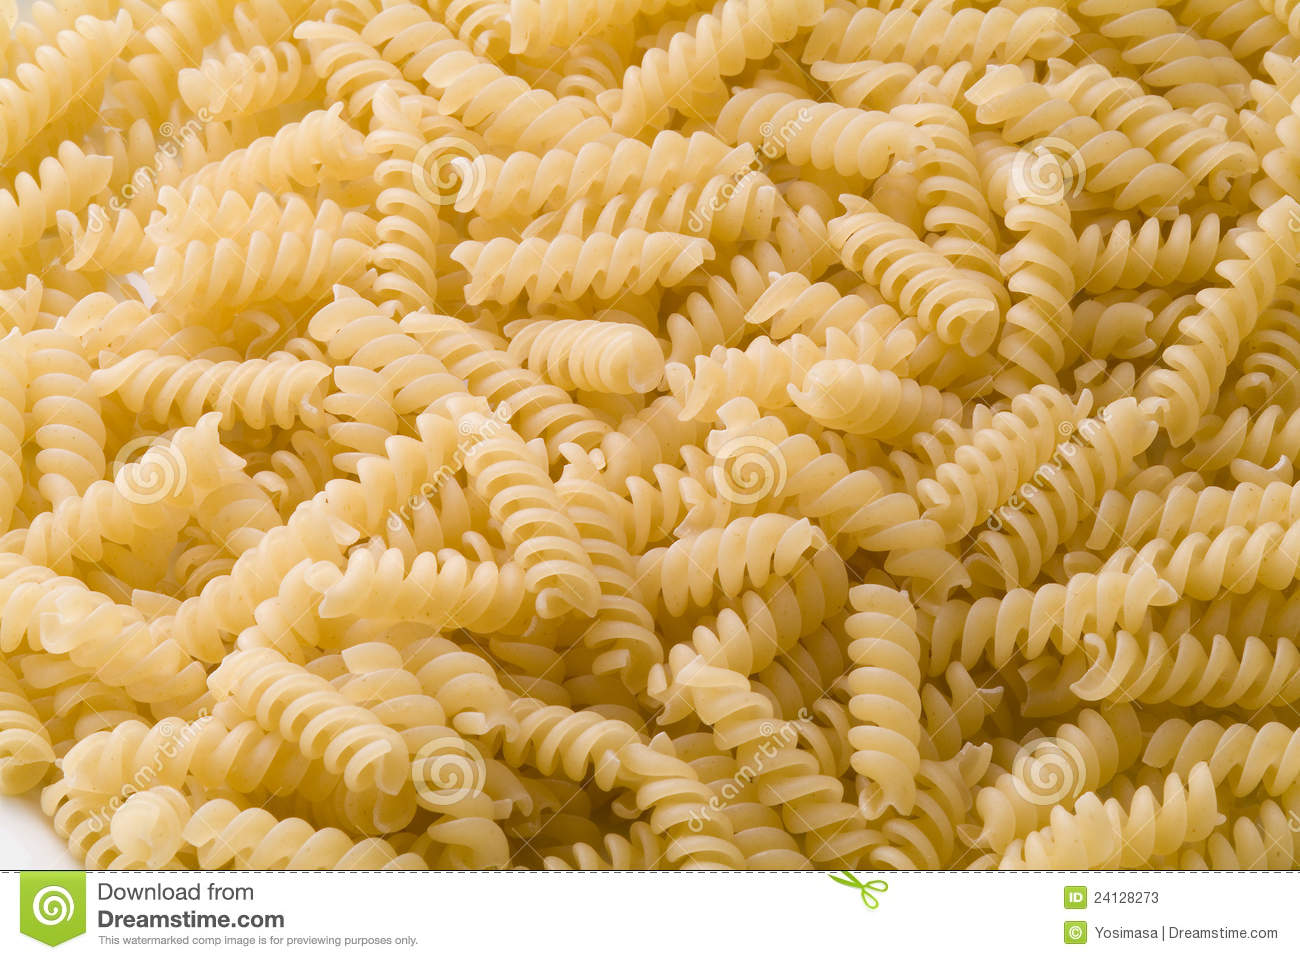 Spiral Pasta Stock Photos - Image: 24128273